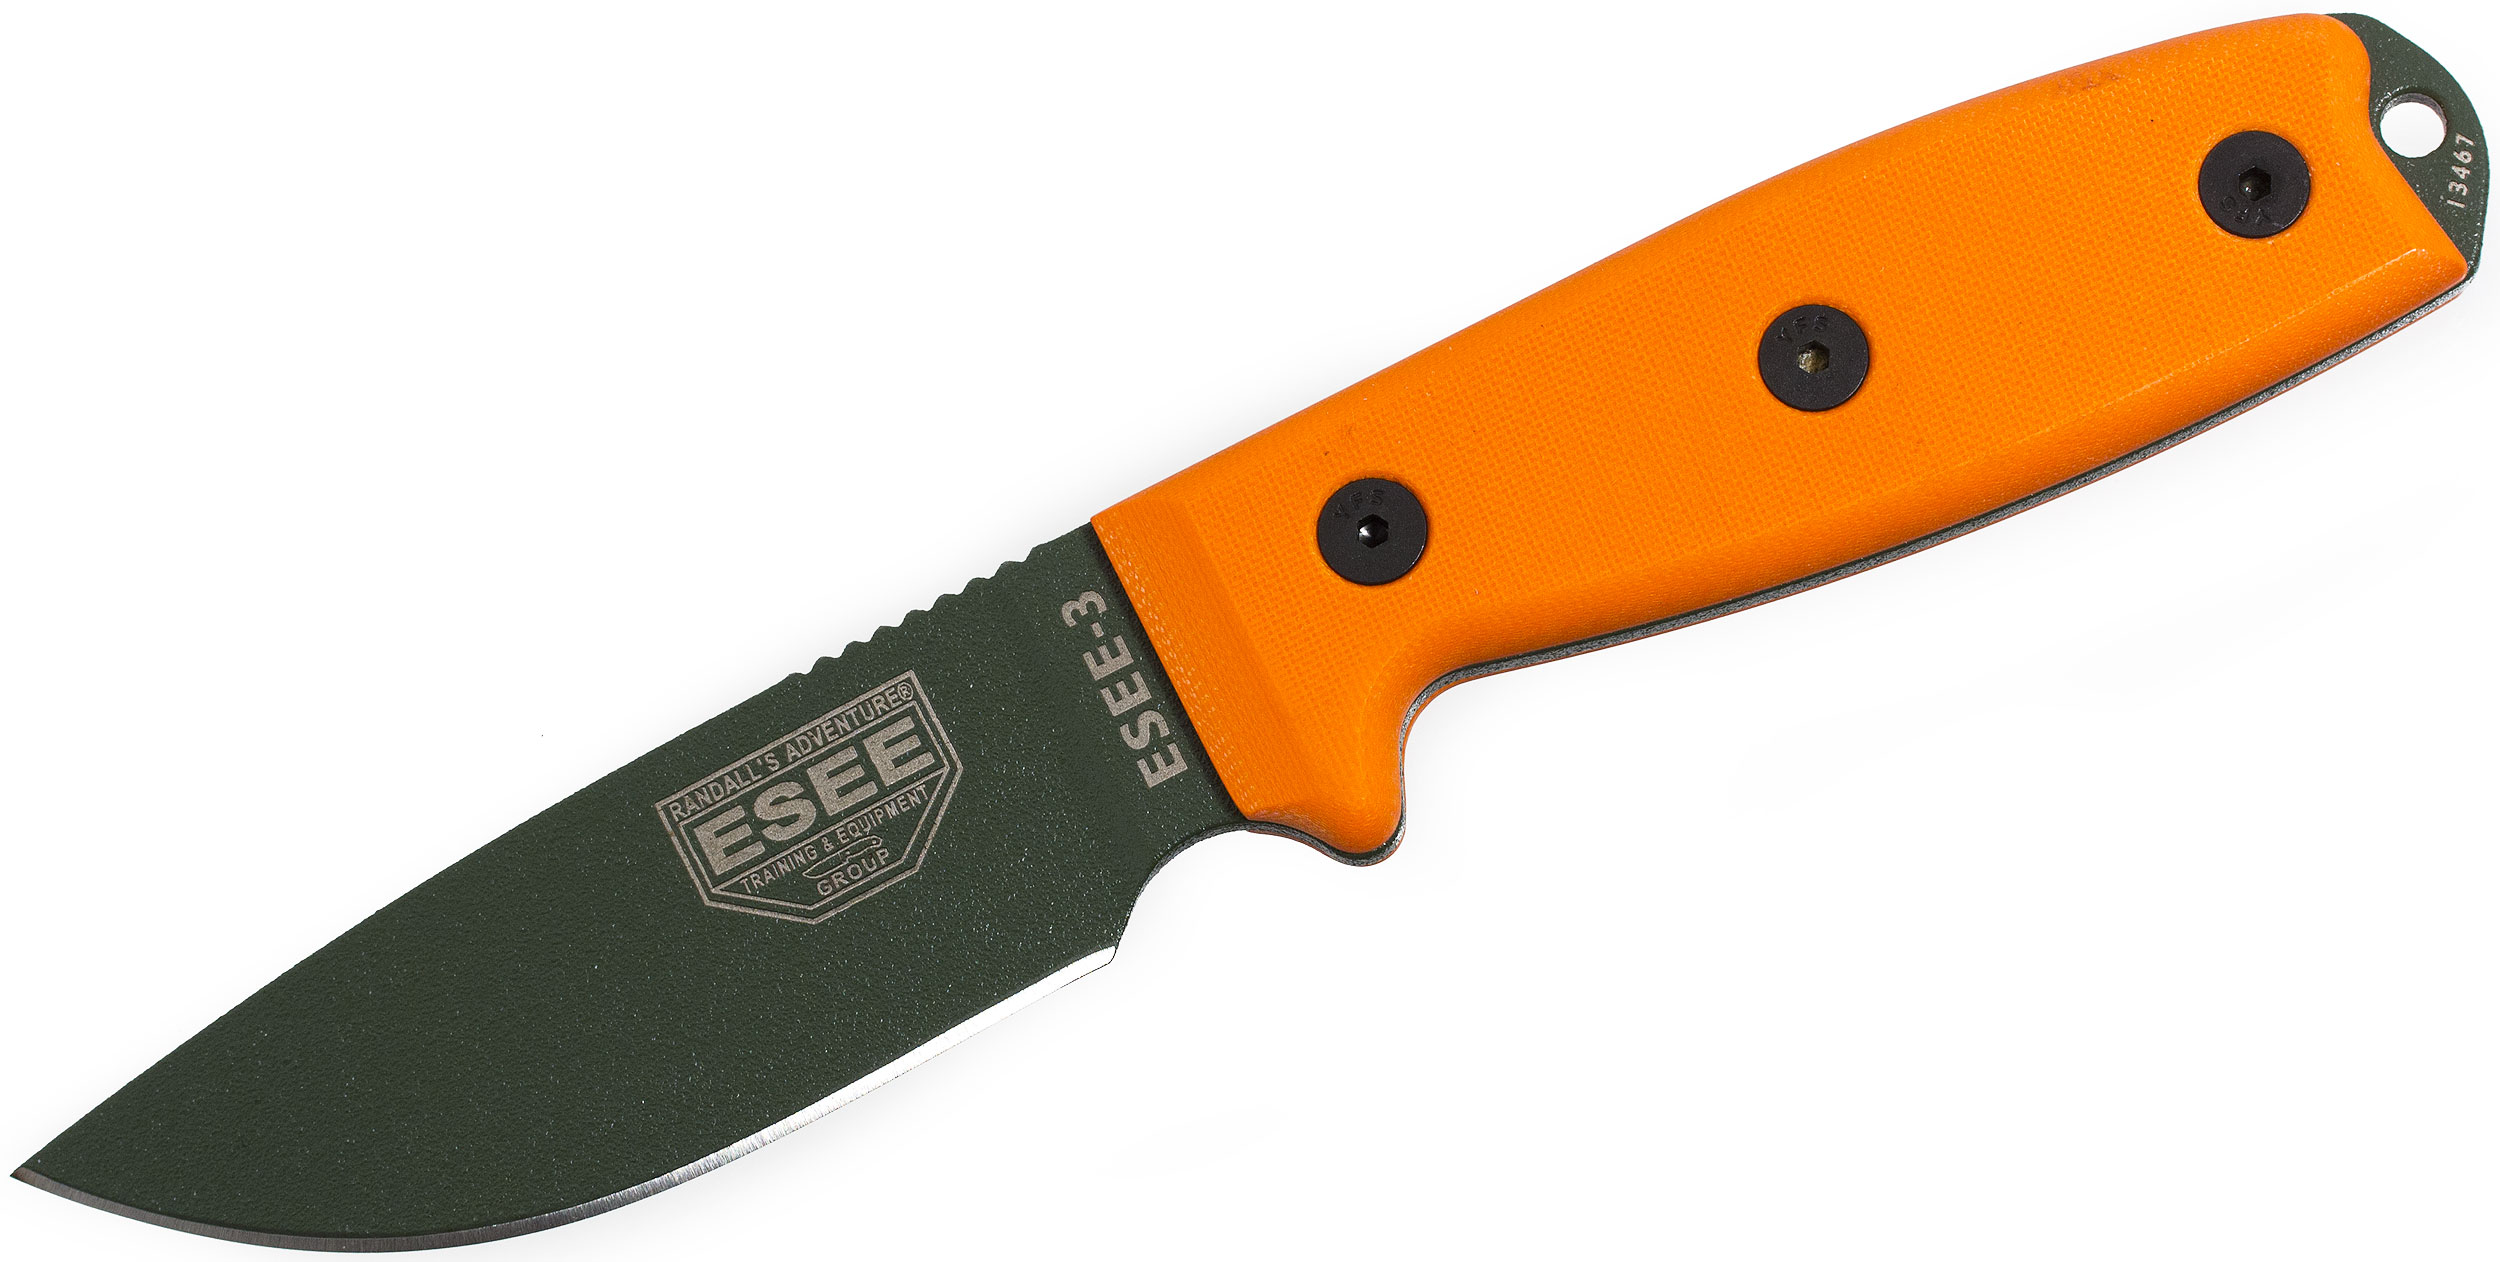 ESEE Knives ESEE-3PM-OD OD Green Plain Edge, Orange G10 Handles, Rounded Pommel, Black Sheath, Clip Plate